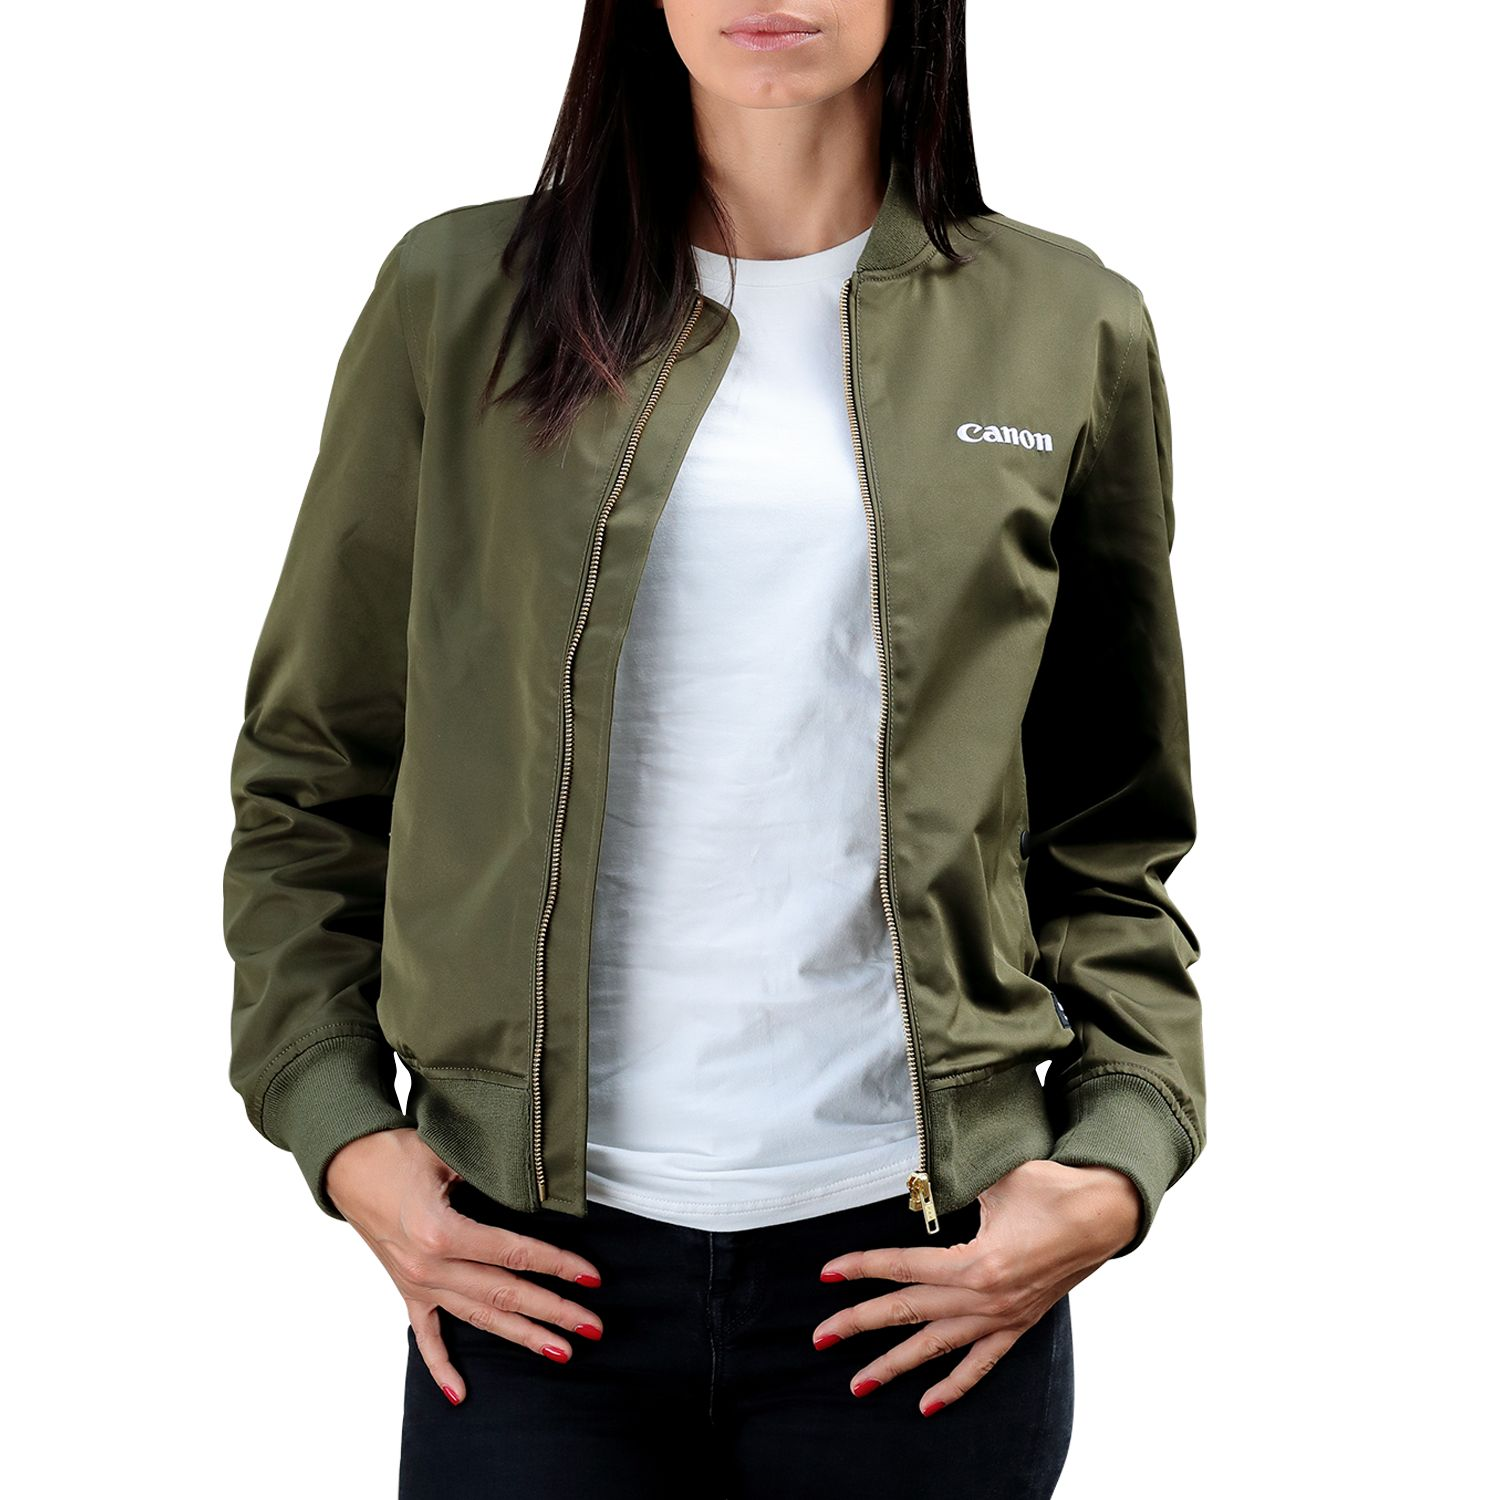 a1489586d Details about Canon Logo Womens Bomber Jacket Long Sleeve Full Zip Dark  Olive Green